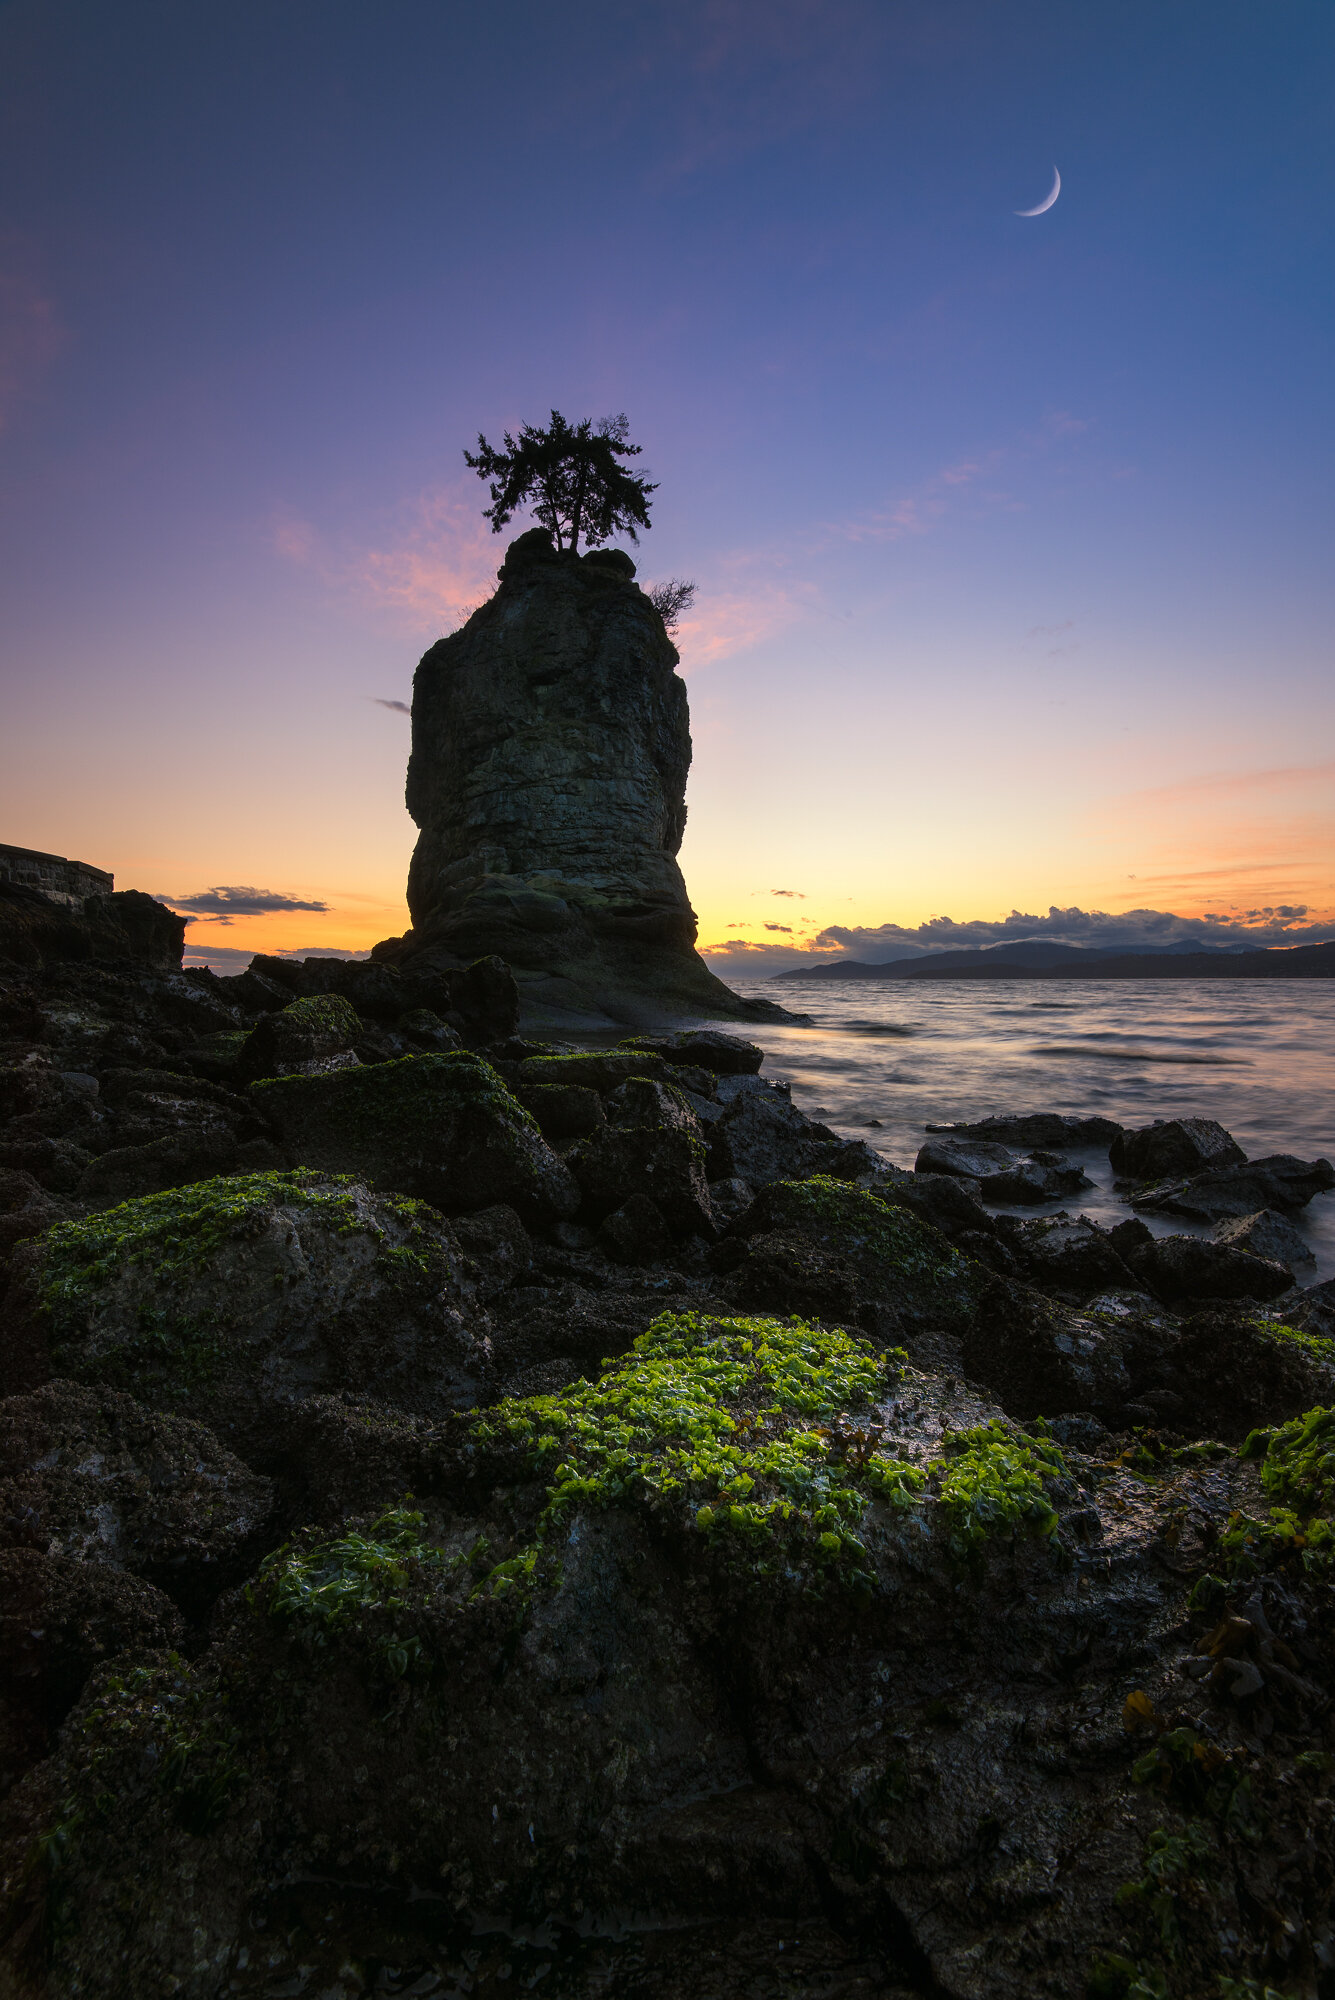 Vancouver Photography: 'Siwash Sunset